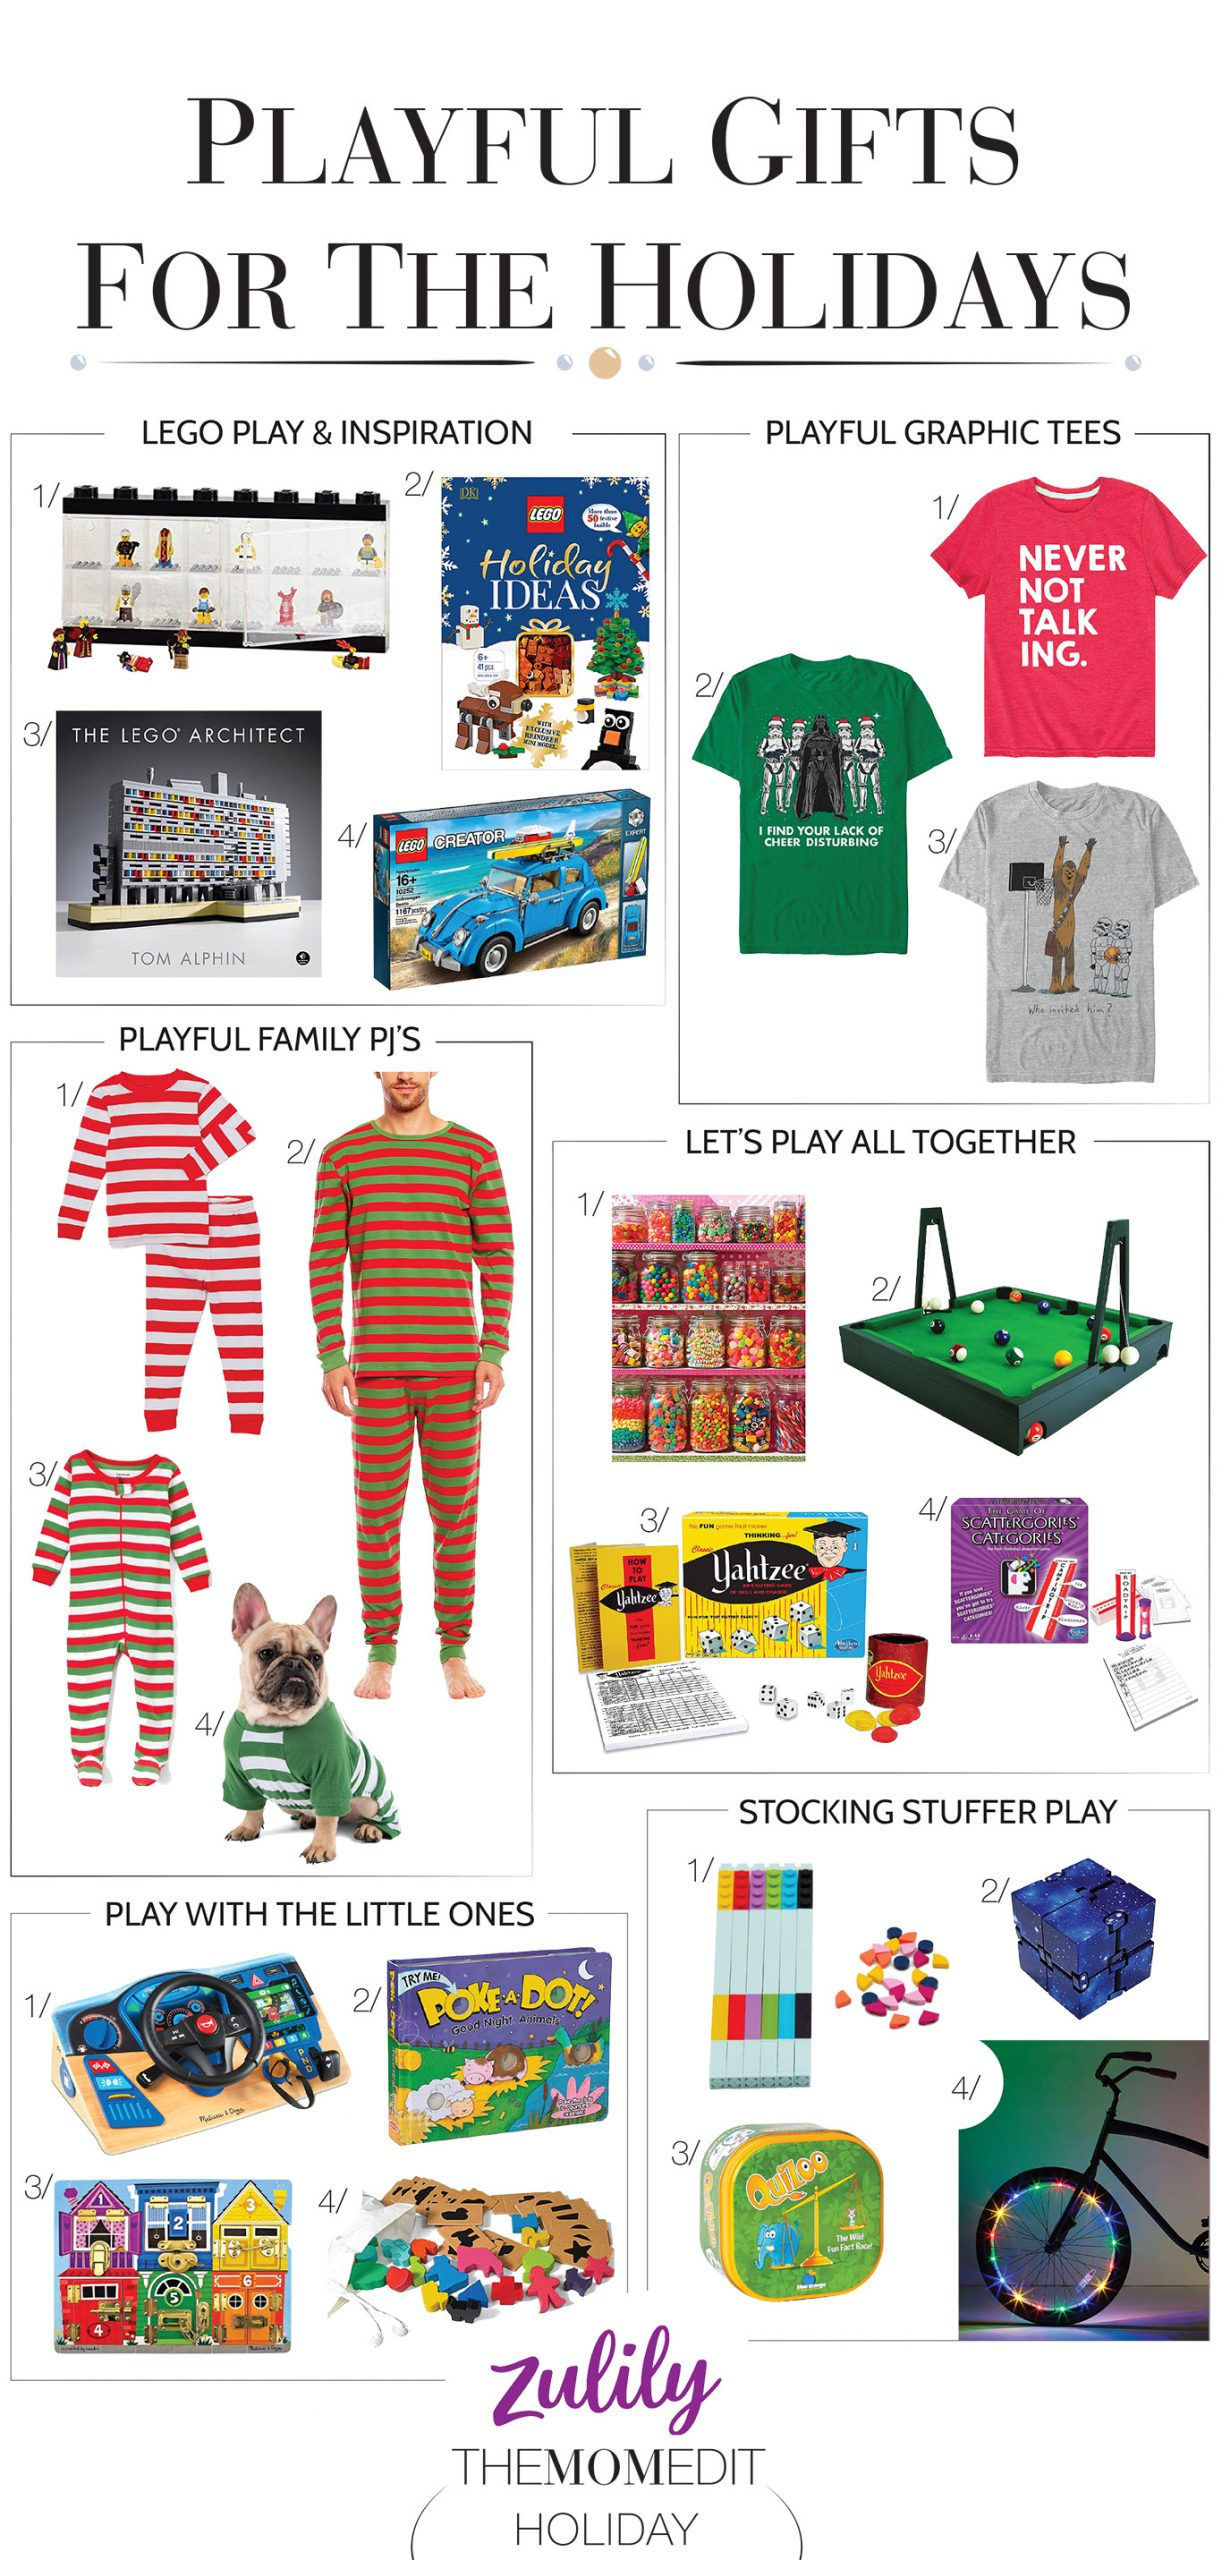 Let's play! We're shopping fun gifts — think LEGO, Star Wars, matching family pj's, graphic tees & of course, games. Zulily is on it — #addtocart.